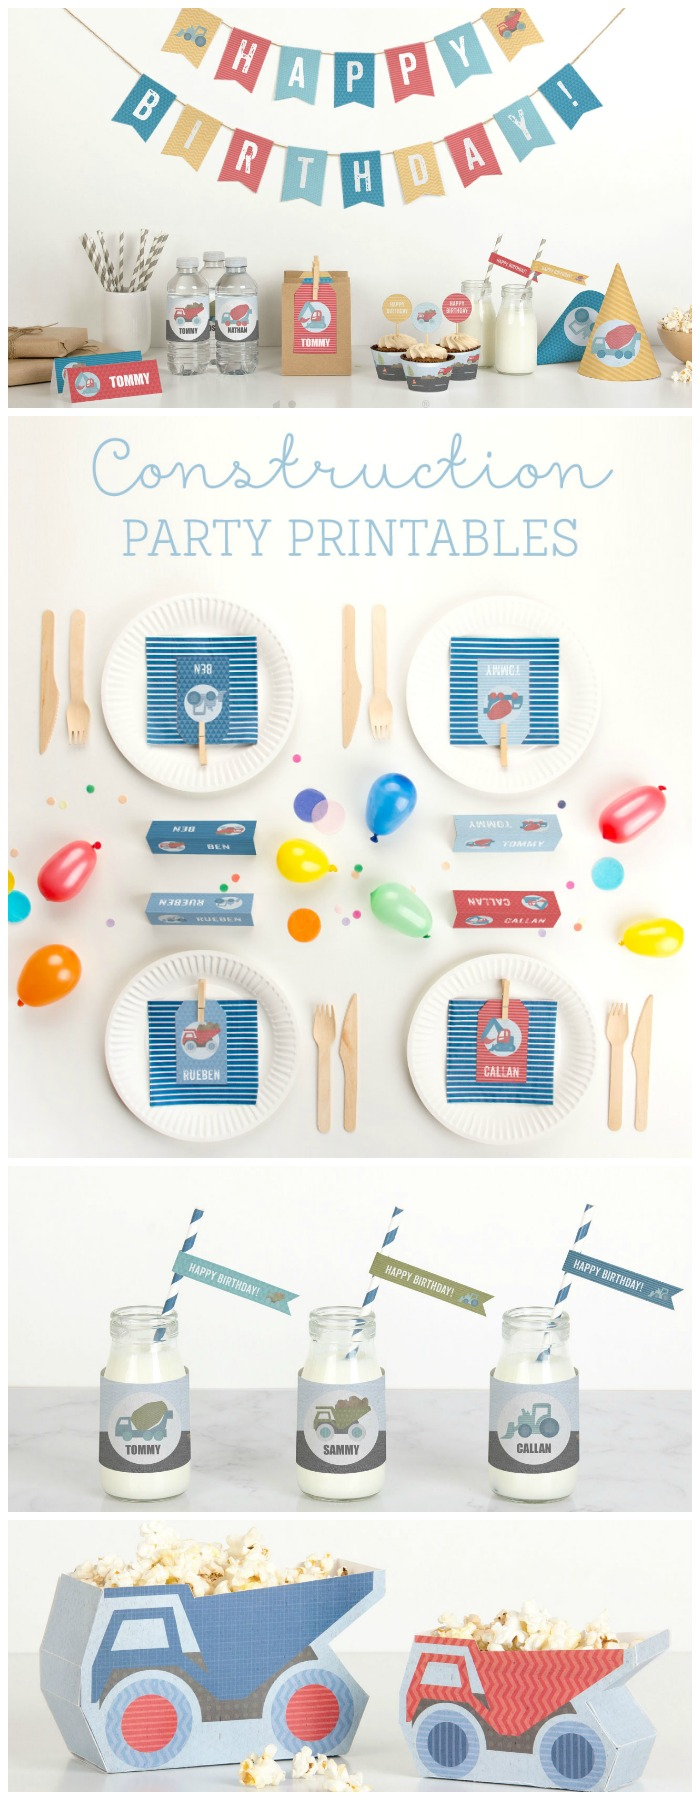 Free printable decorations for a construction party for kids birthdays